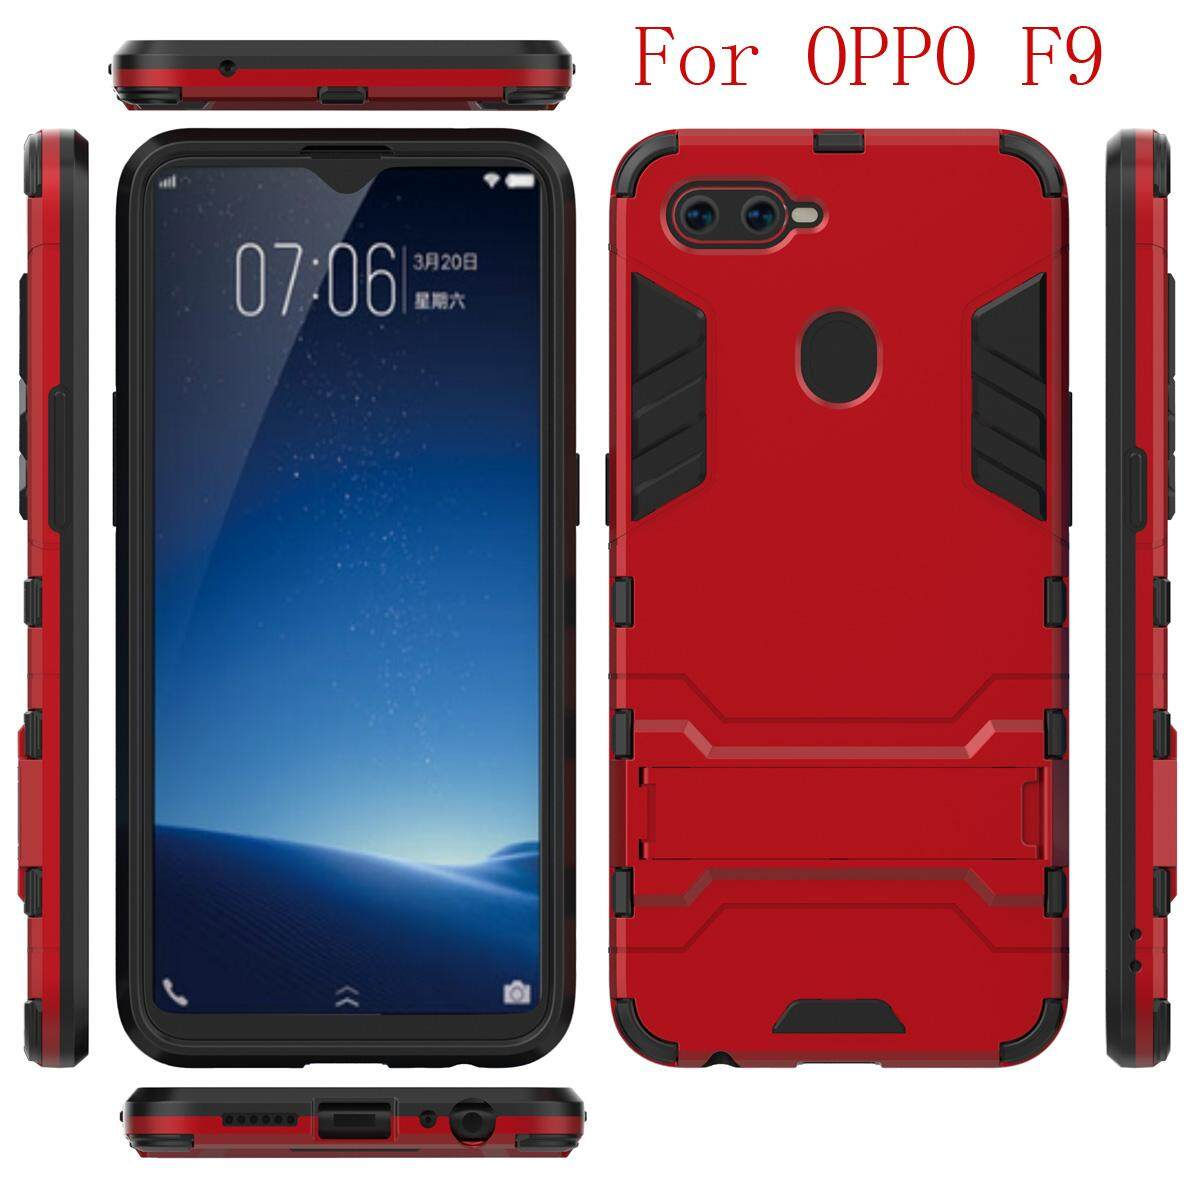 ... Premium Quality Grade A Ultraslim Hybrid Case for Oppo A37 / Neo 9. Source · Armor Shockproof Phone Casing Built-in Holder Casing hp for Oppo F9